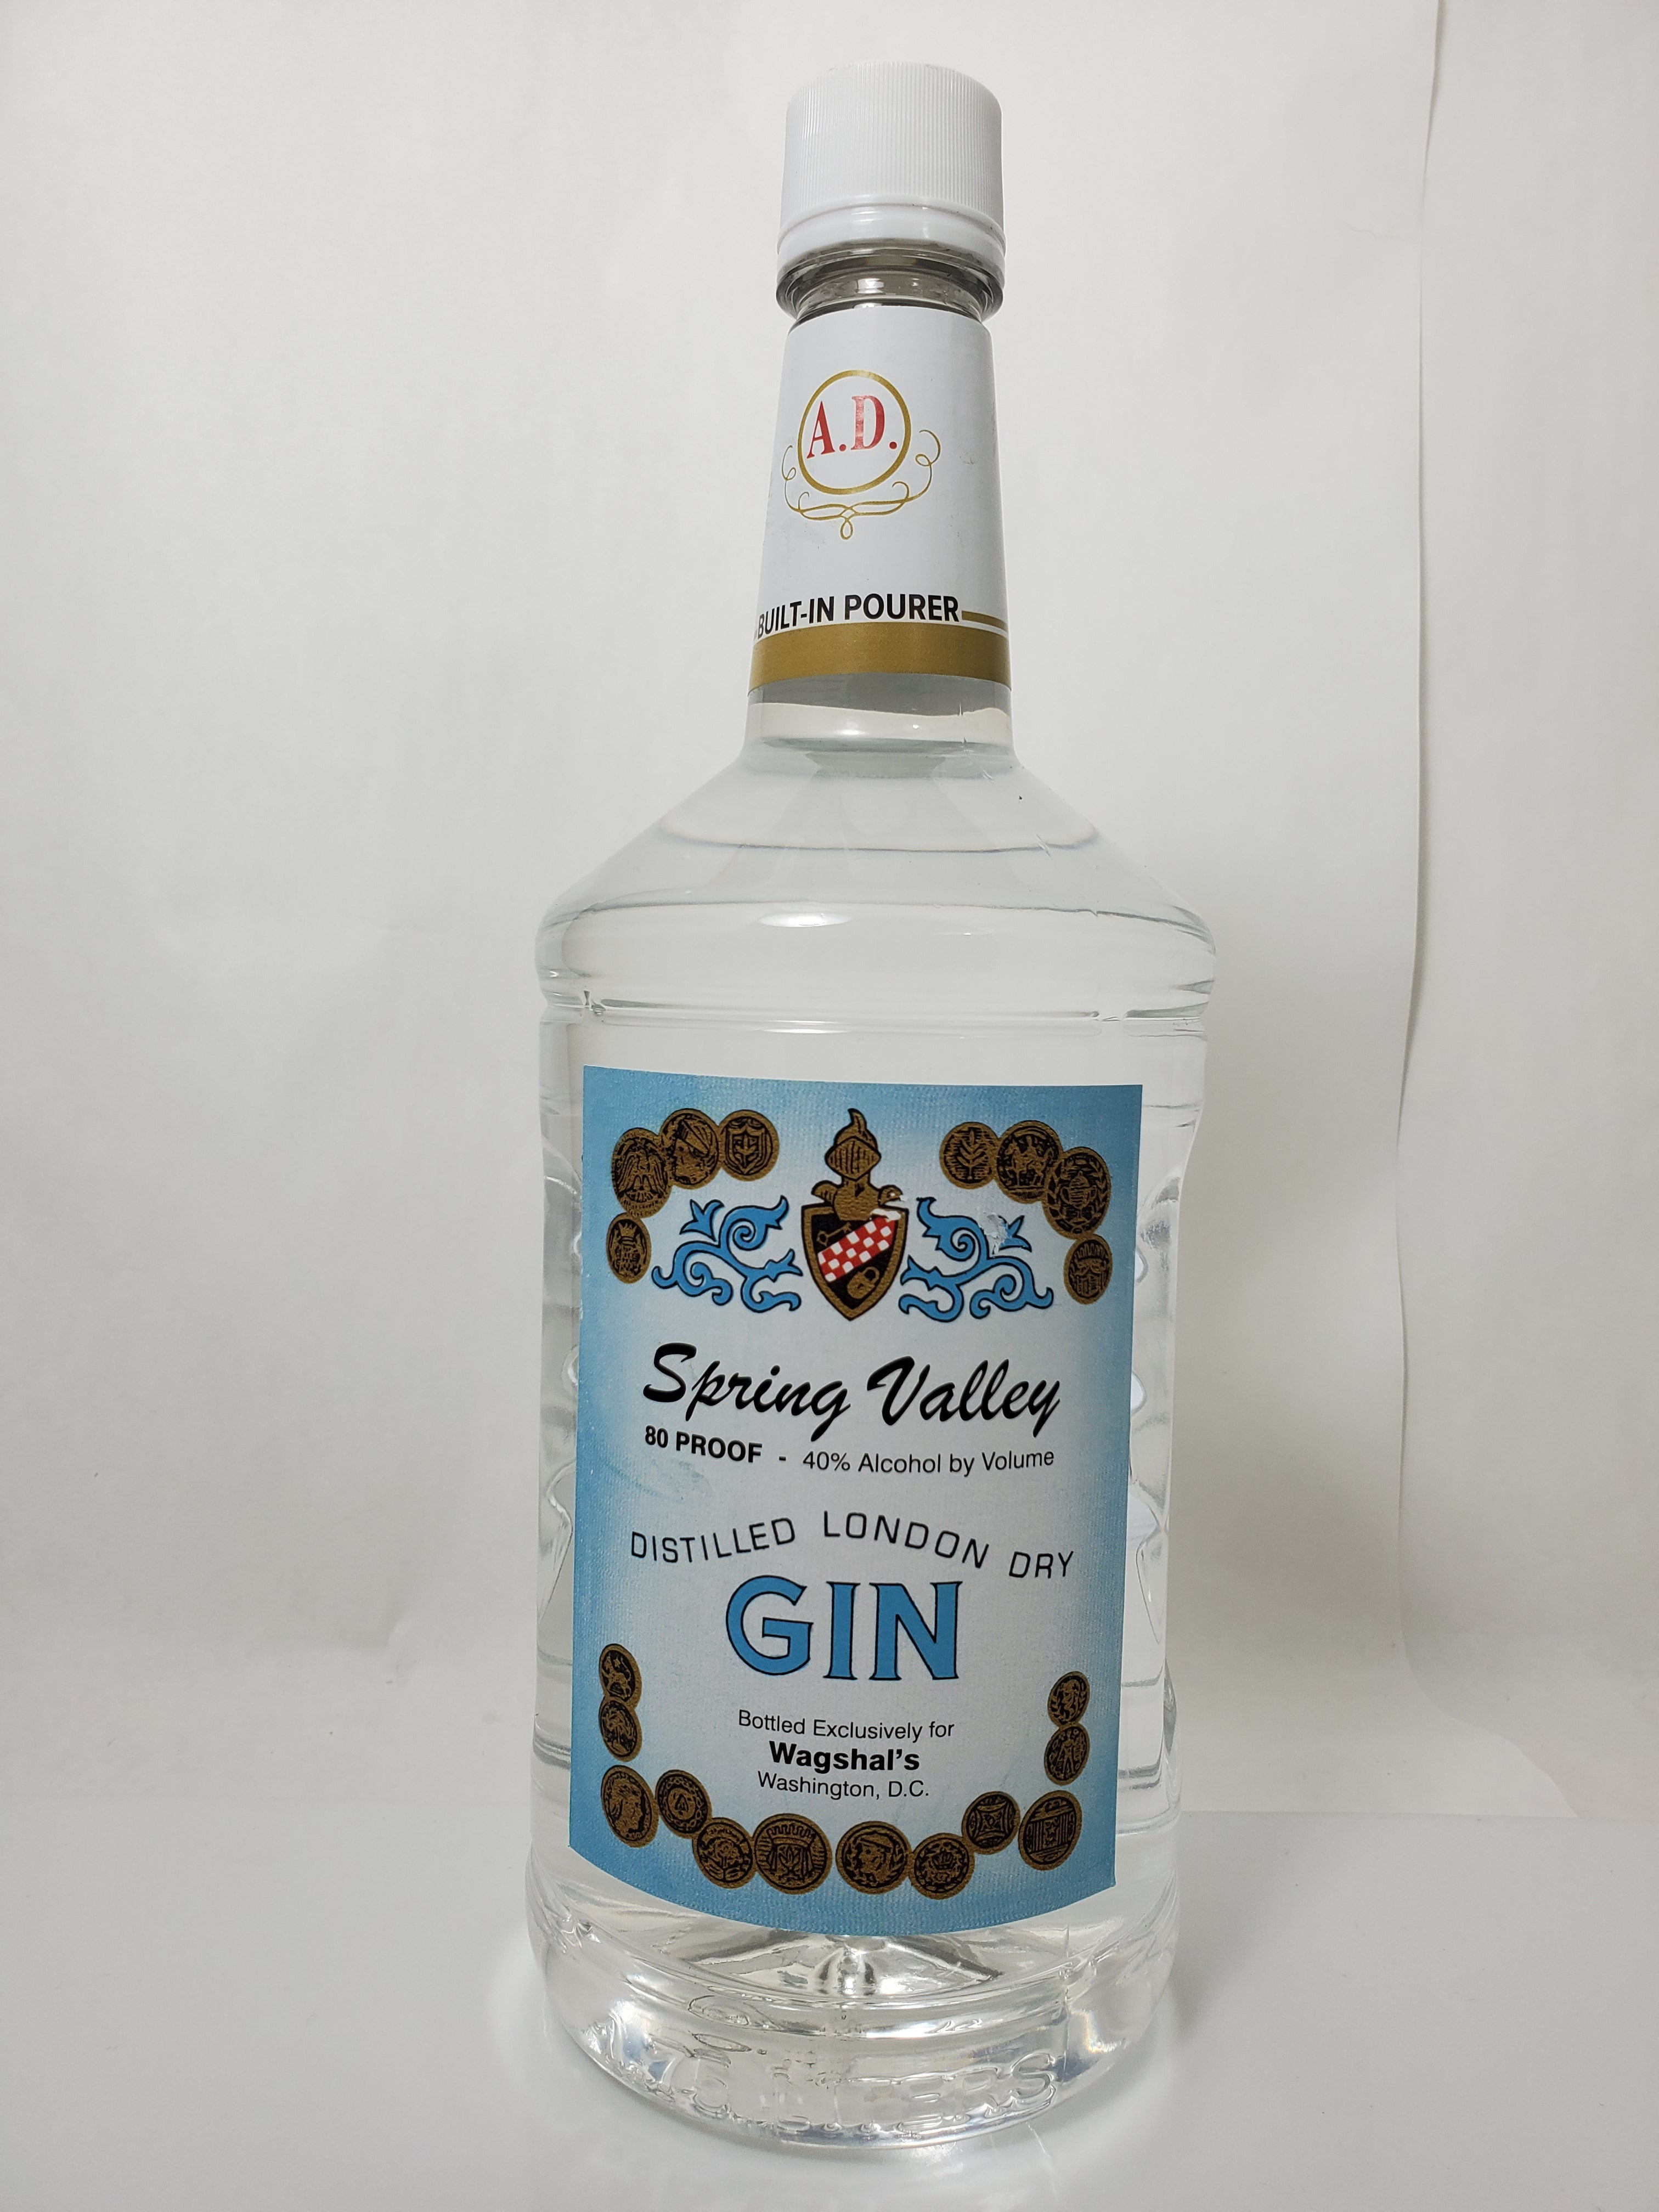 Spring Valley Gin 1.75 Liter